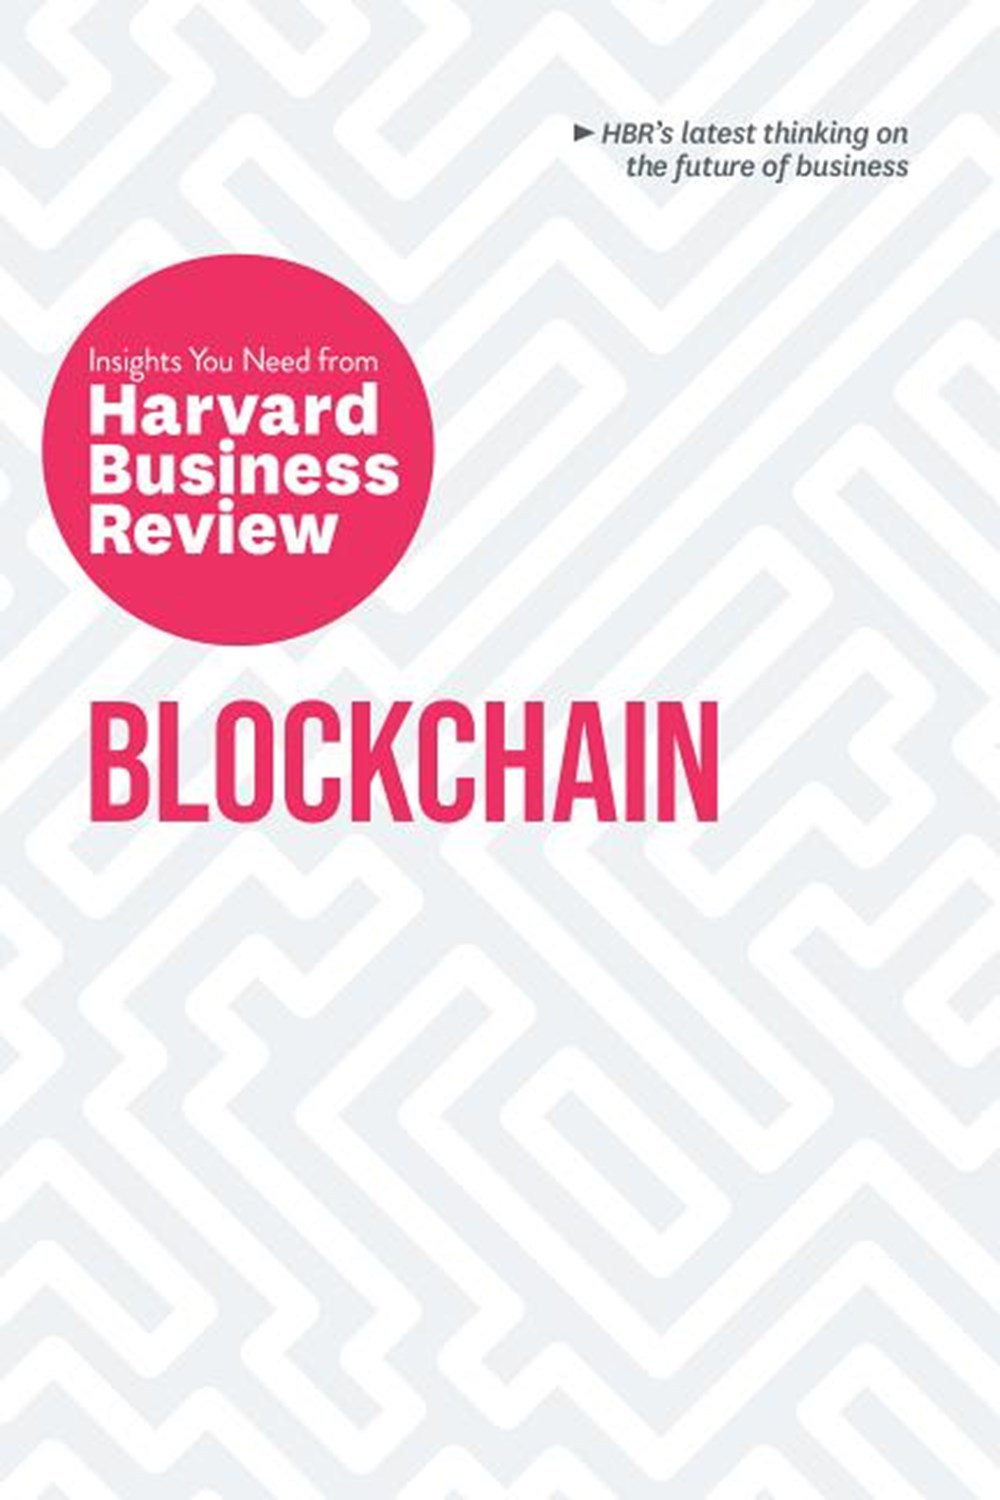 Blockchain The Insights You Need from Harvard Business Review